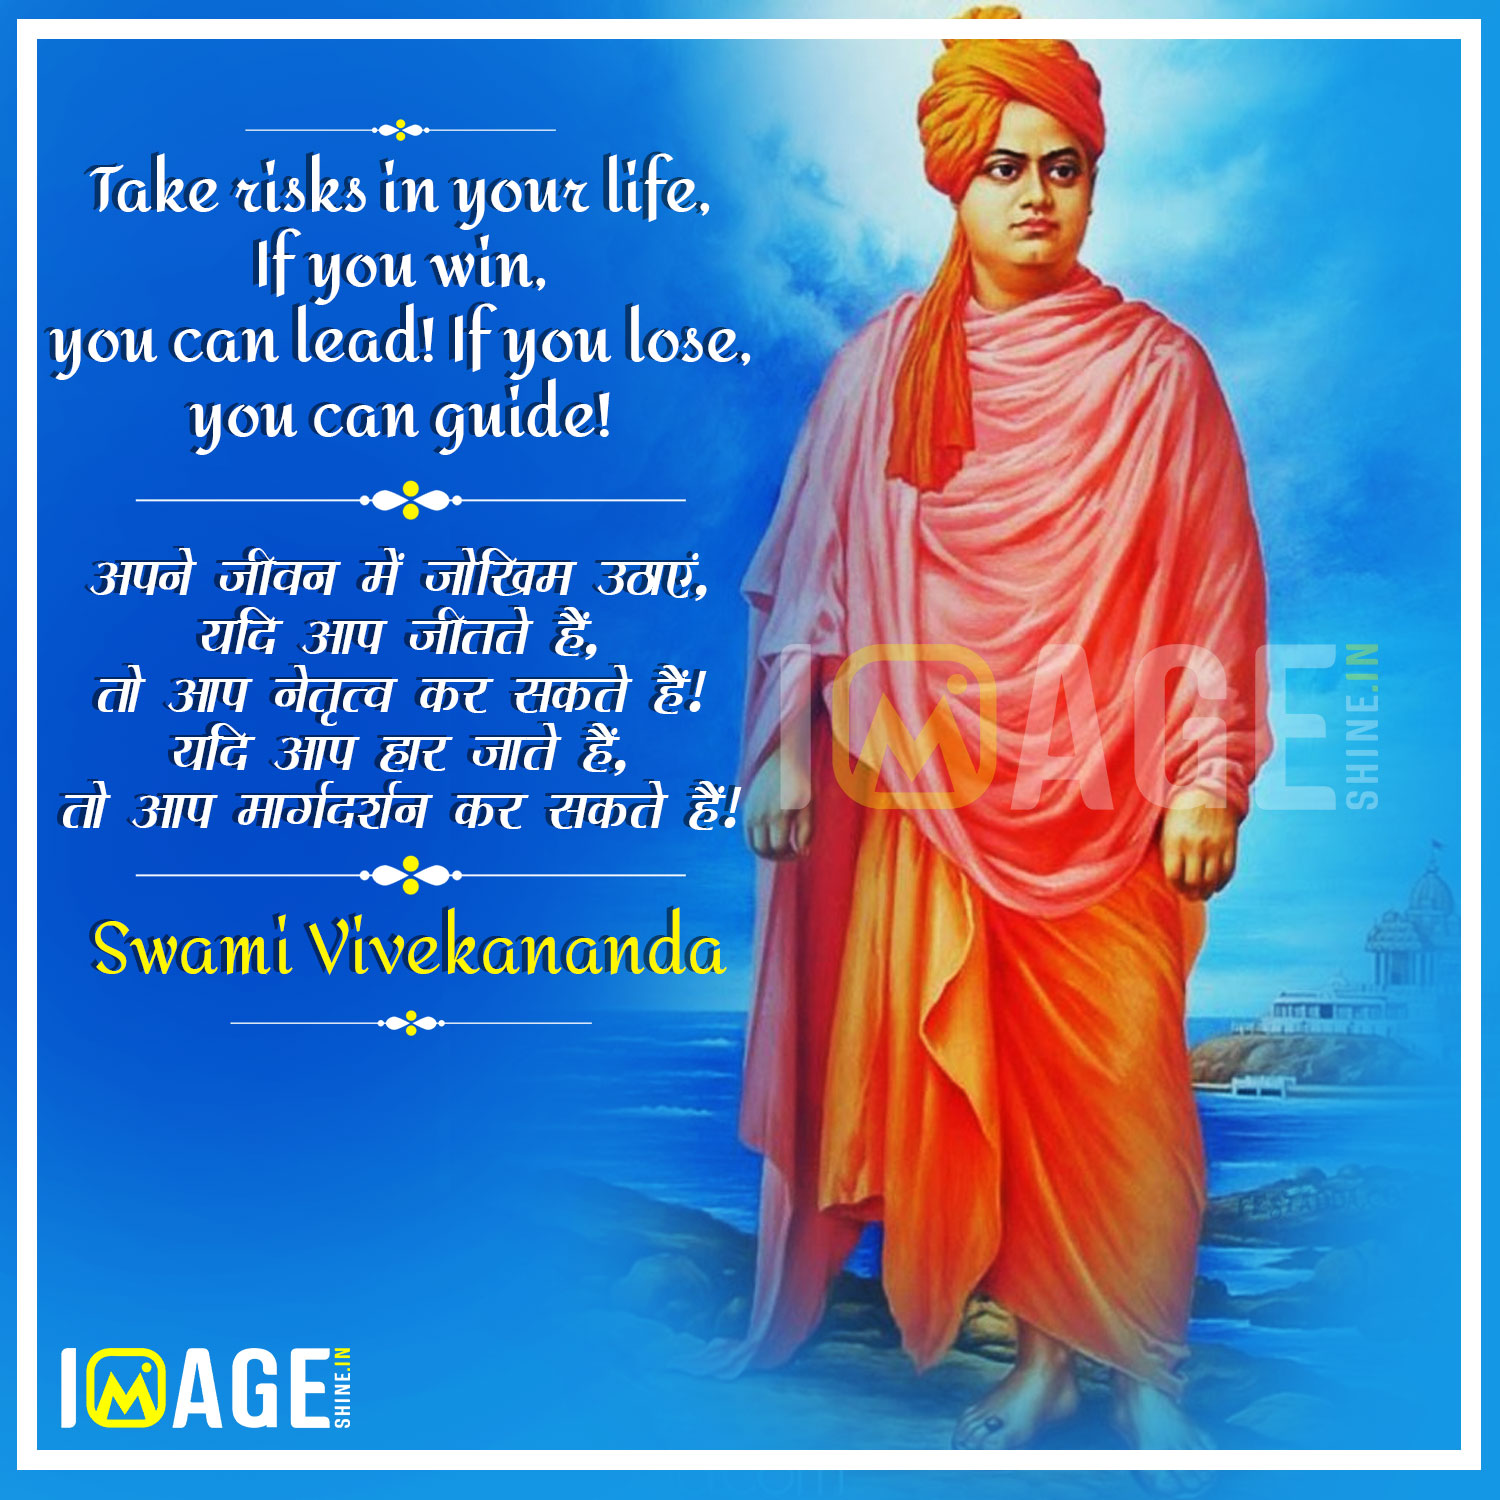 swami vivekananda hindi quote